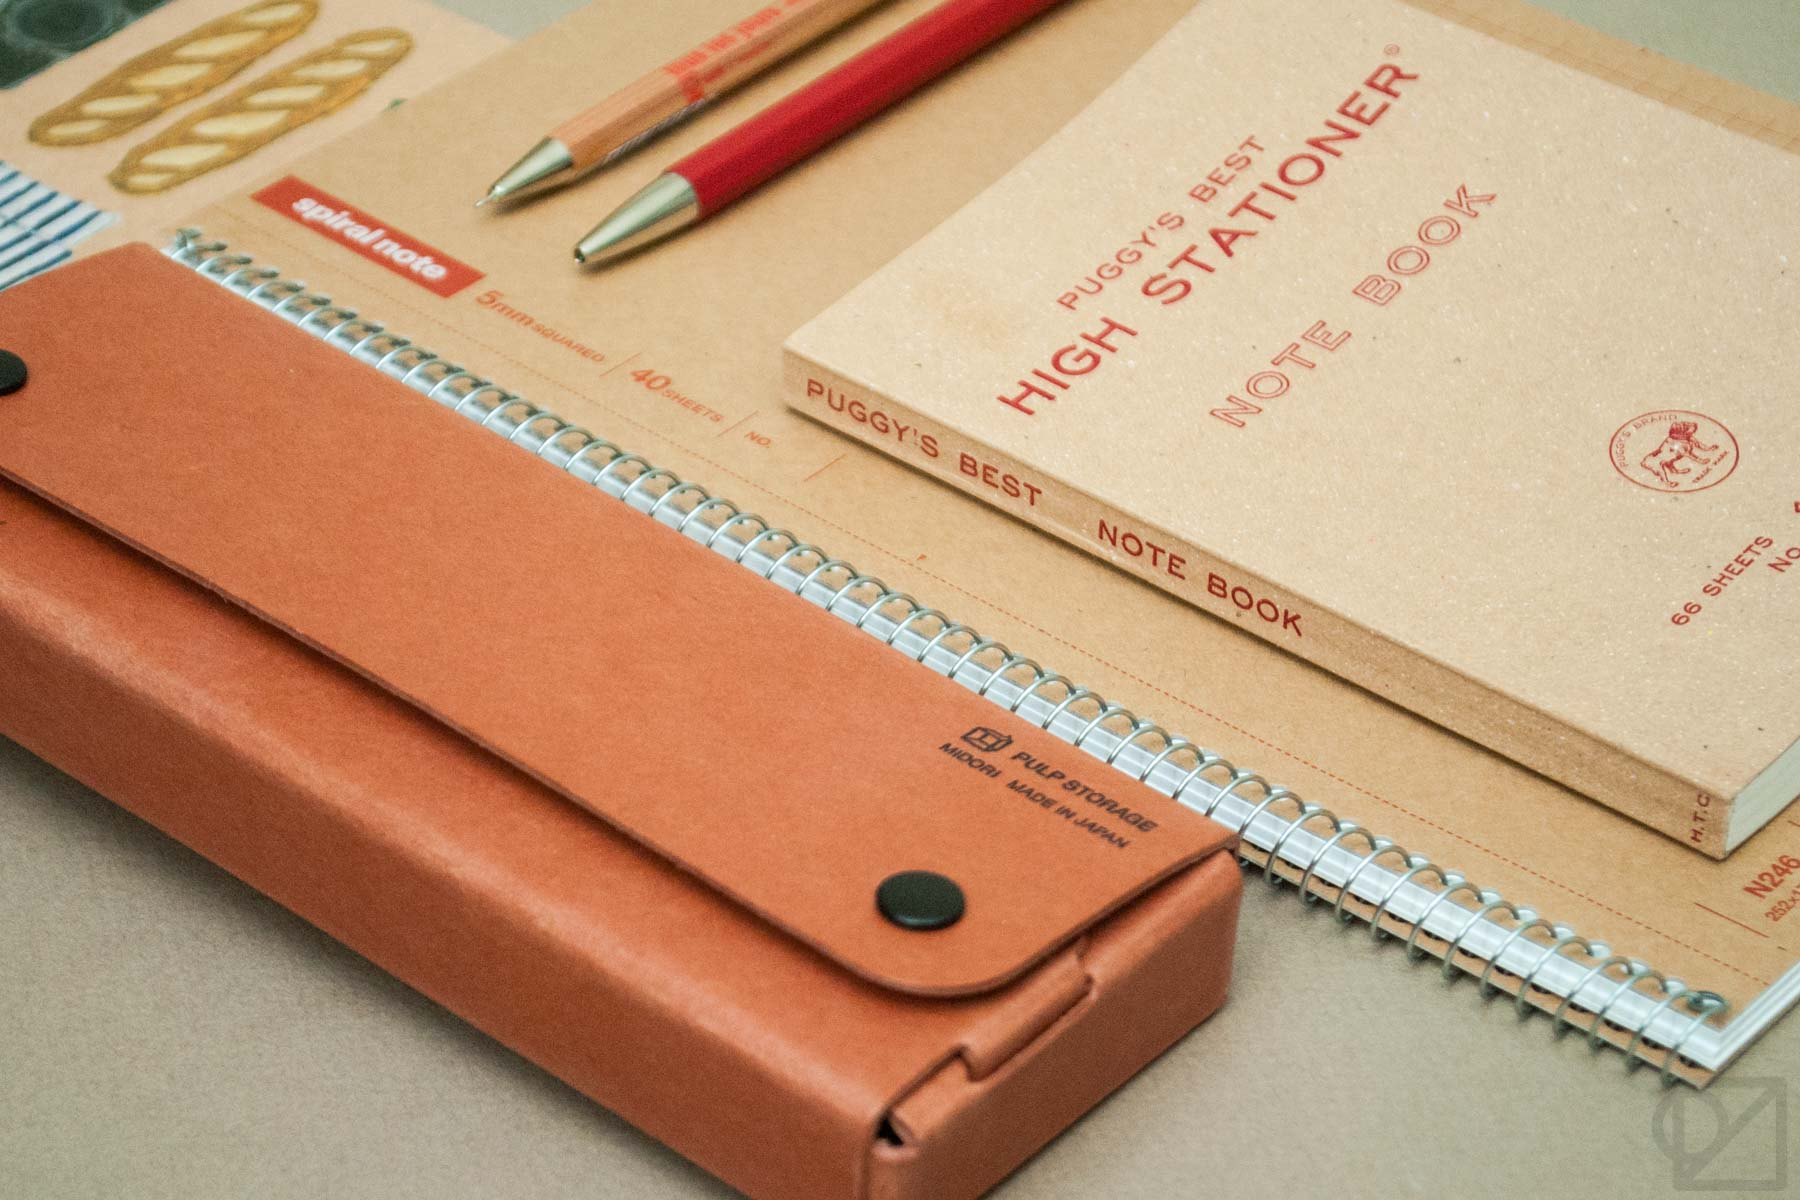 The difference between STATIONERY and STATIONARY